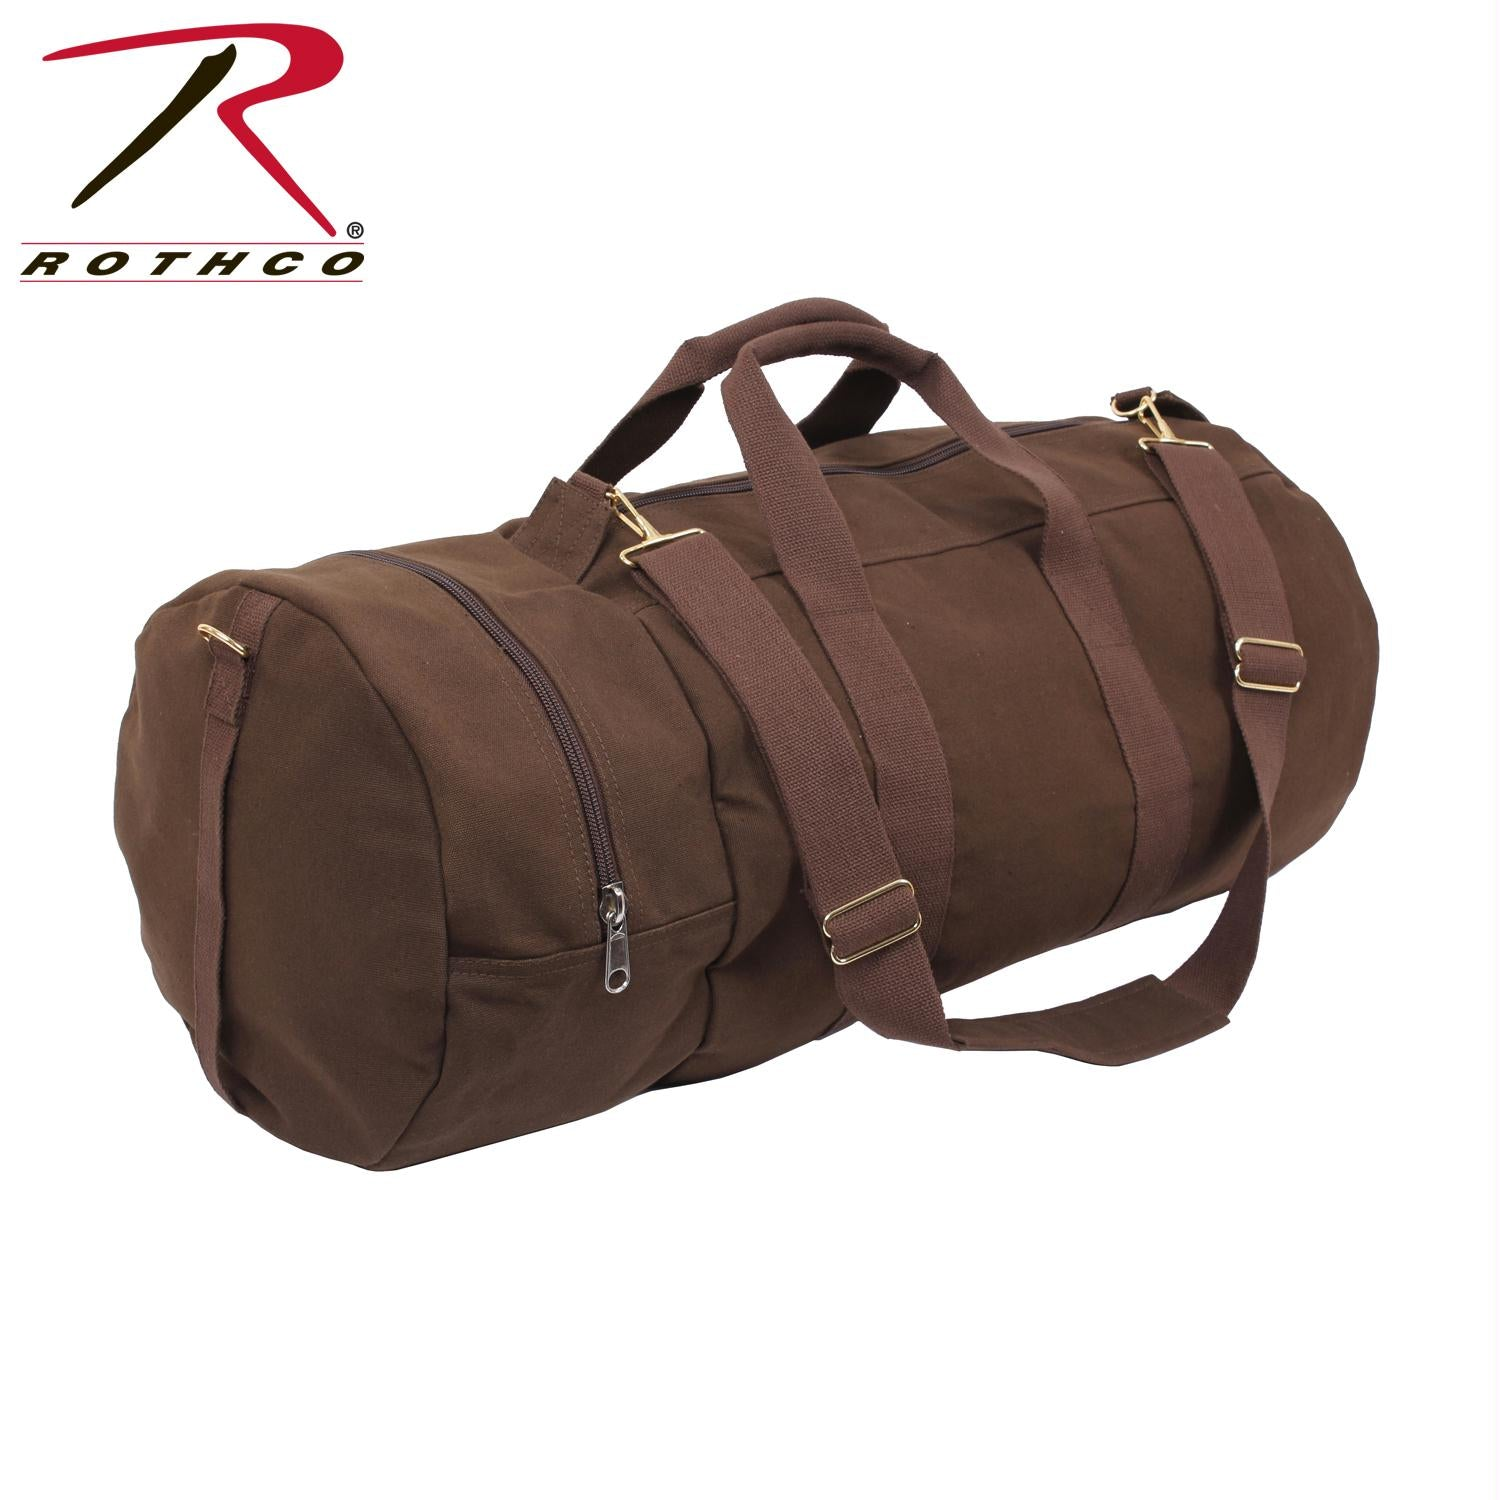 Rothco Canvas Double-Ender Sports Bag - Earth Brown